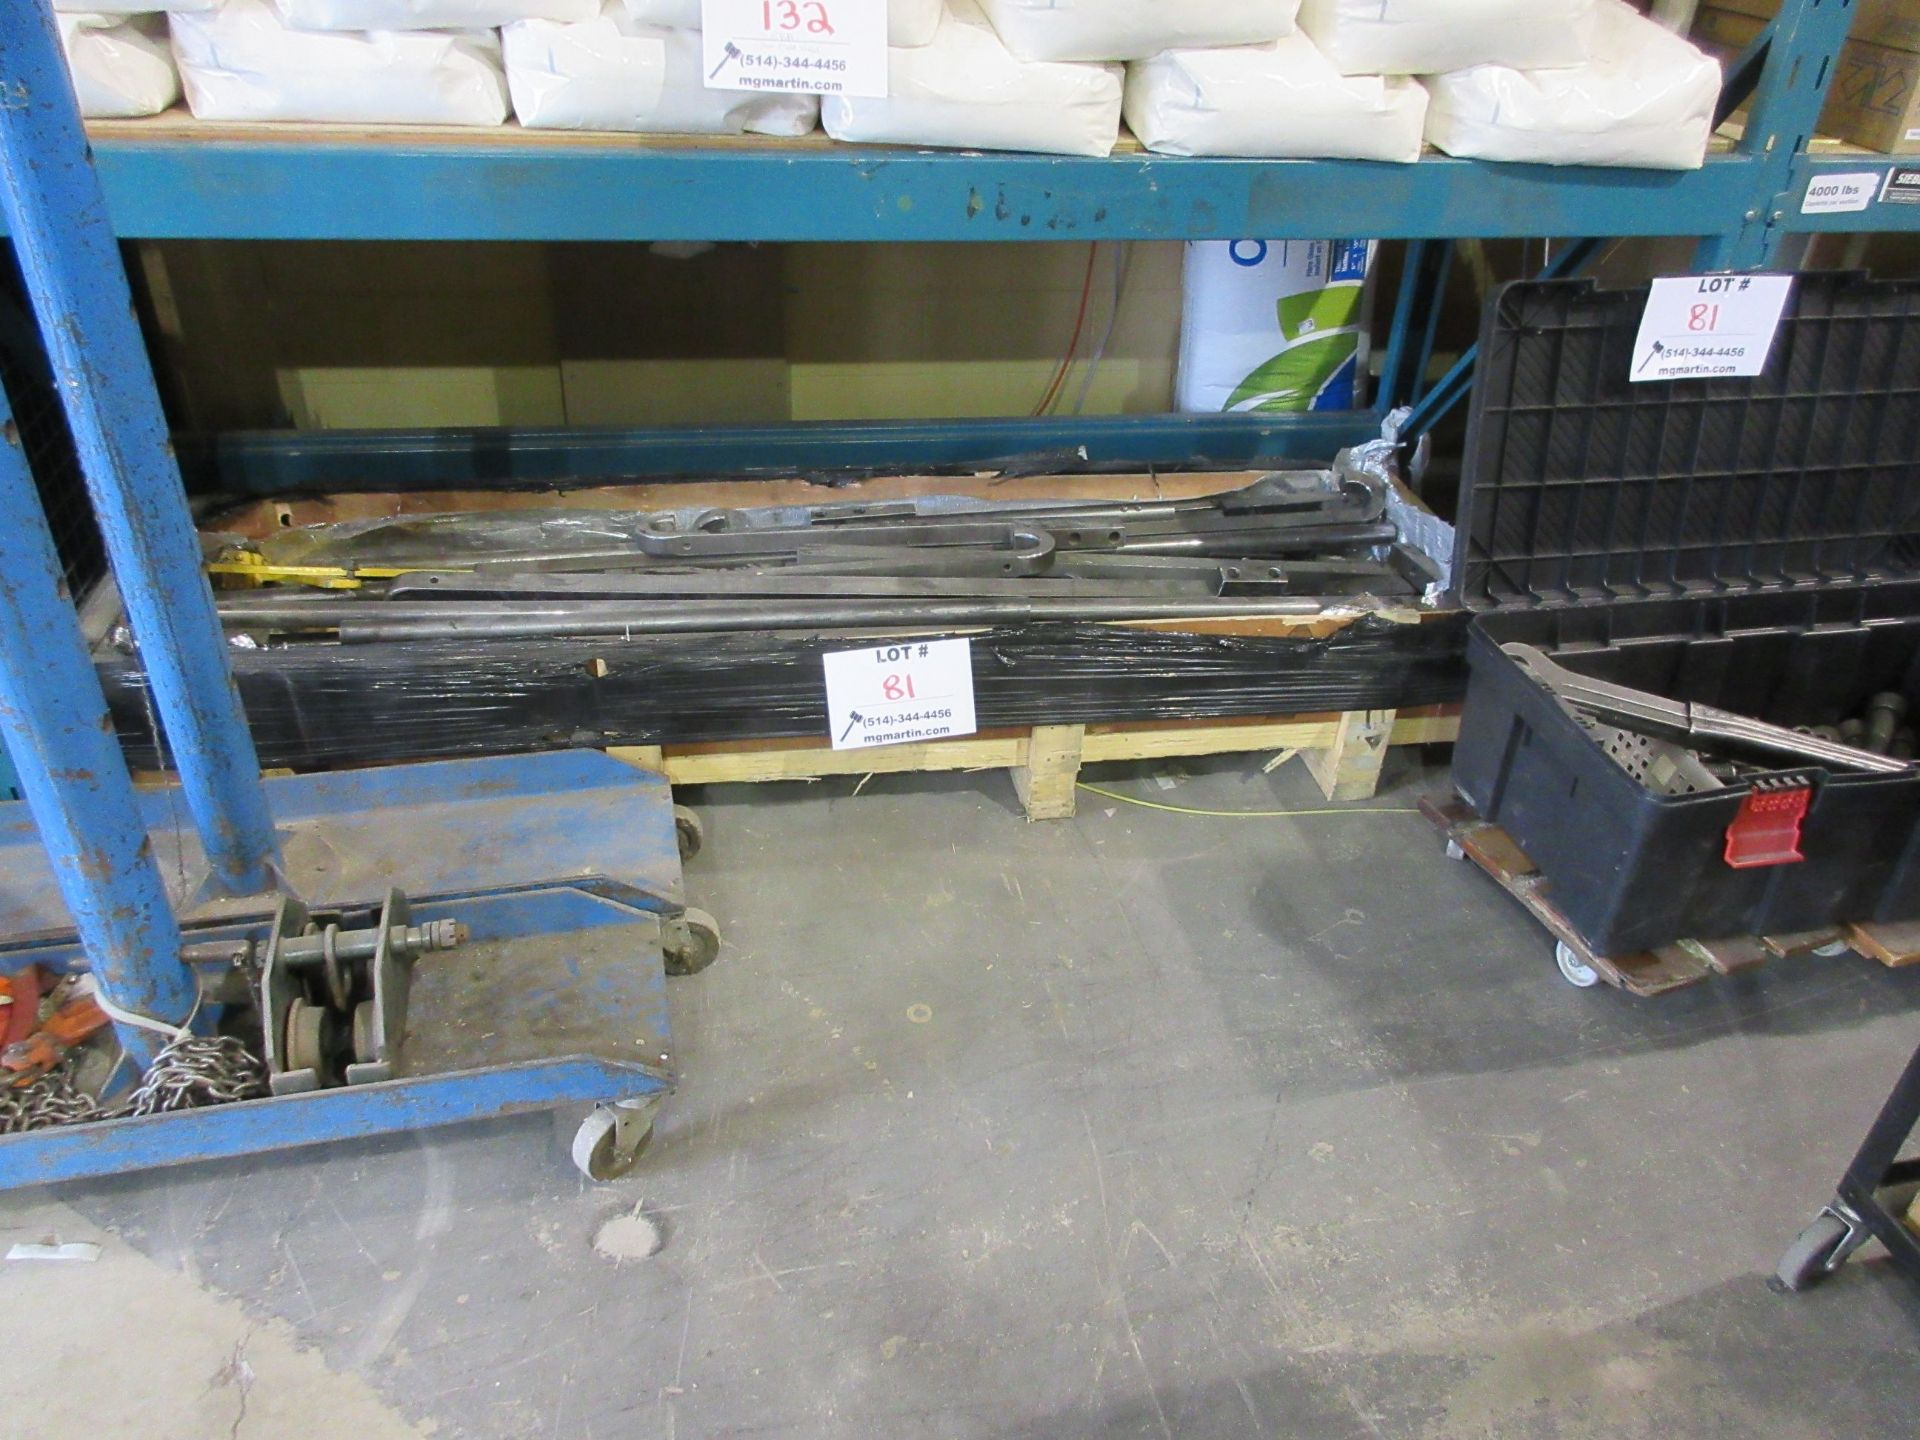 Lot 81 - LOT Including heavy duty tools to move industrial machinery